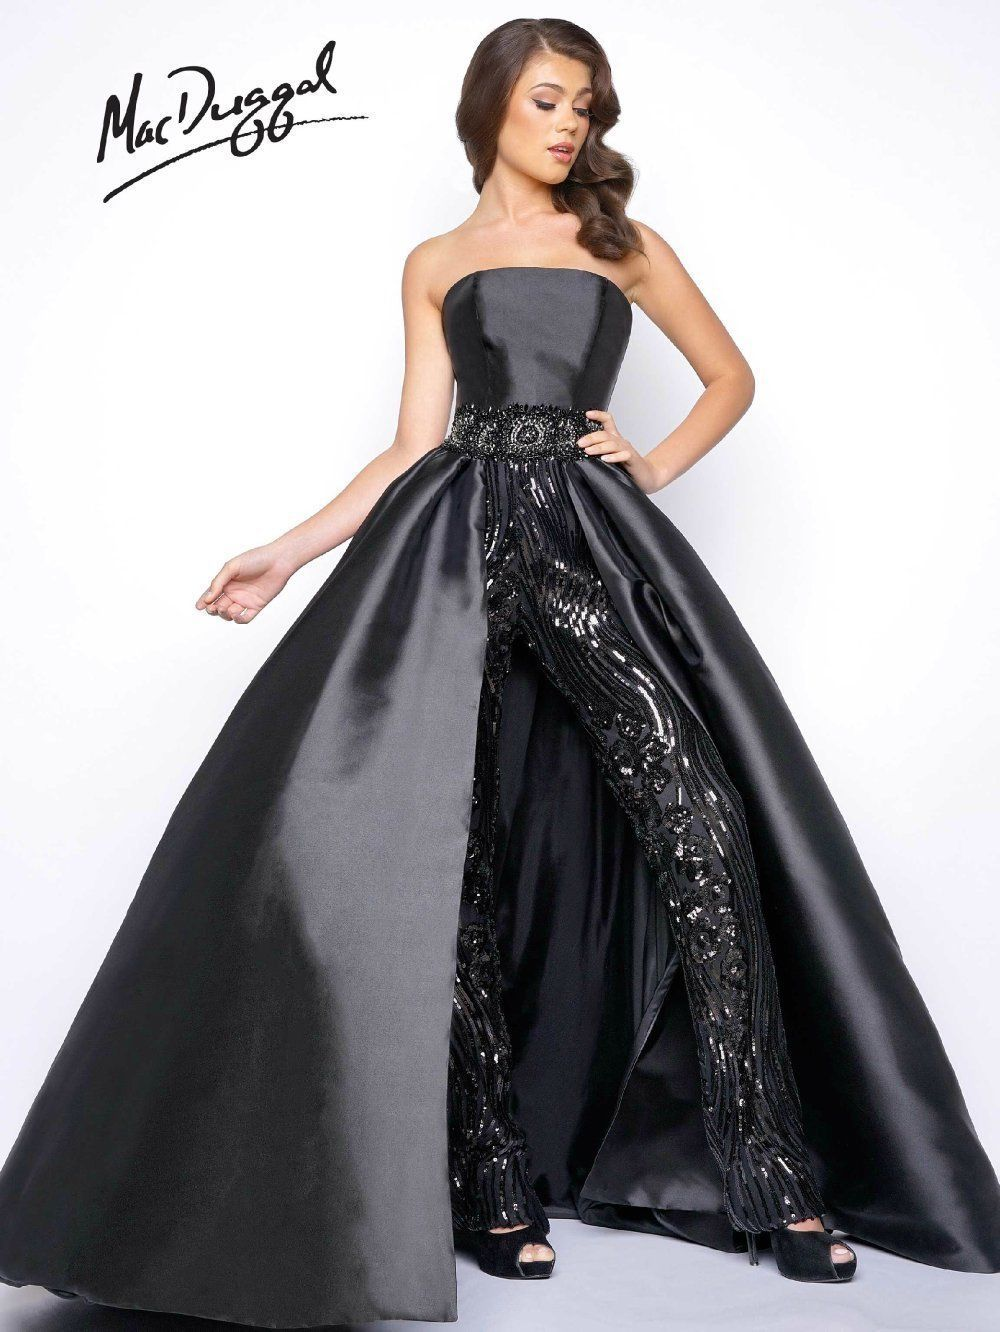 Awesome mac duggal dress gown prom price guaranteelayaway